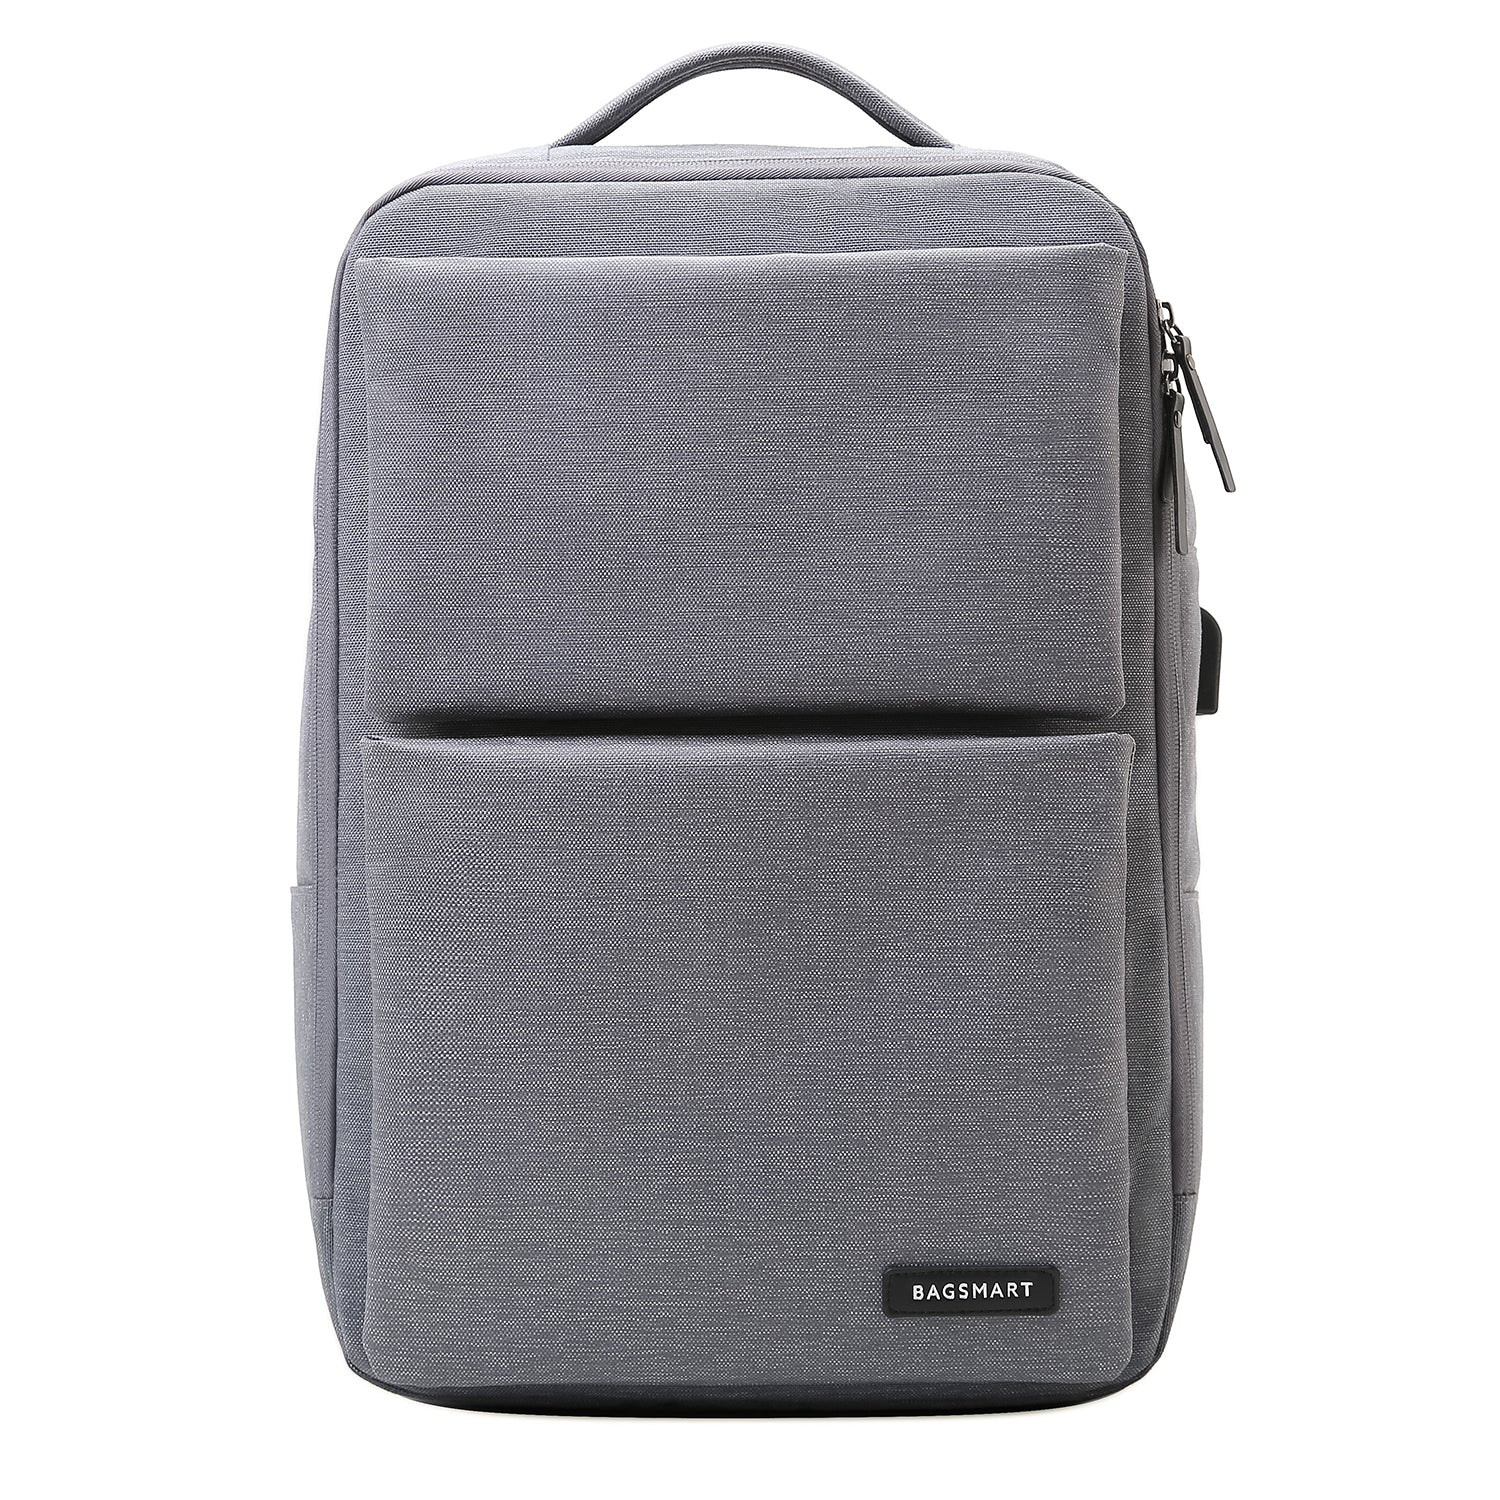 9cd9348224 Laptop Backpack Business Bags with USB Charging Port Anti-Theft Water  Resistant Polyester School Bookbag